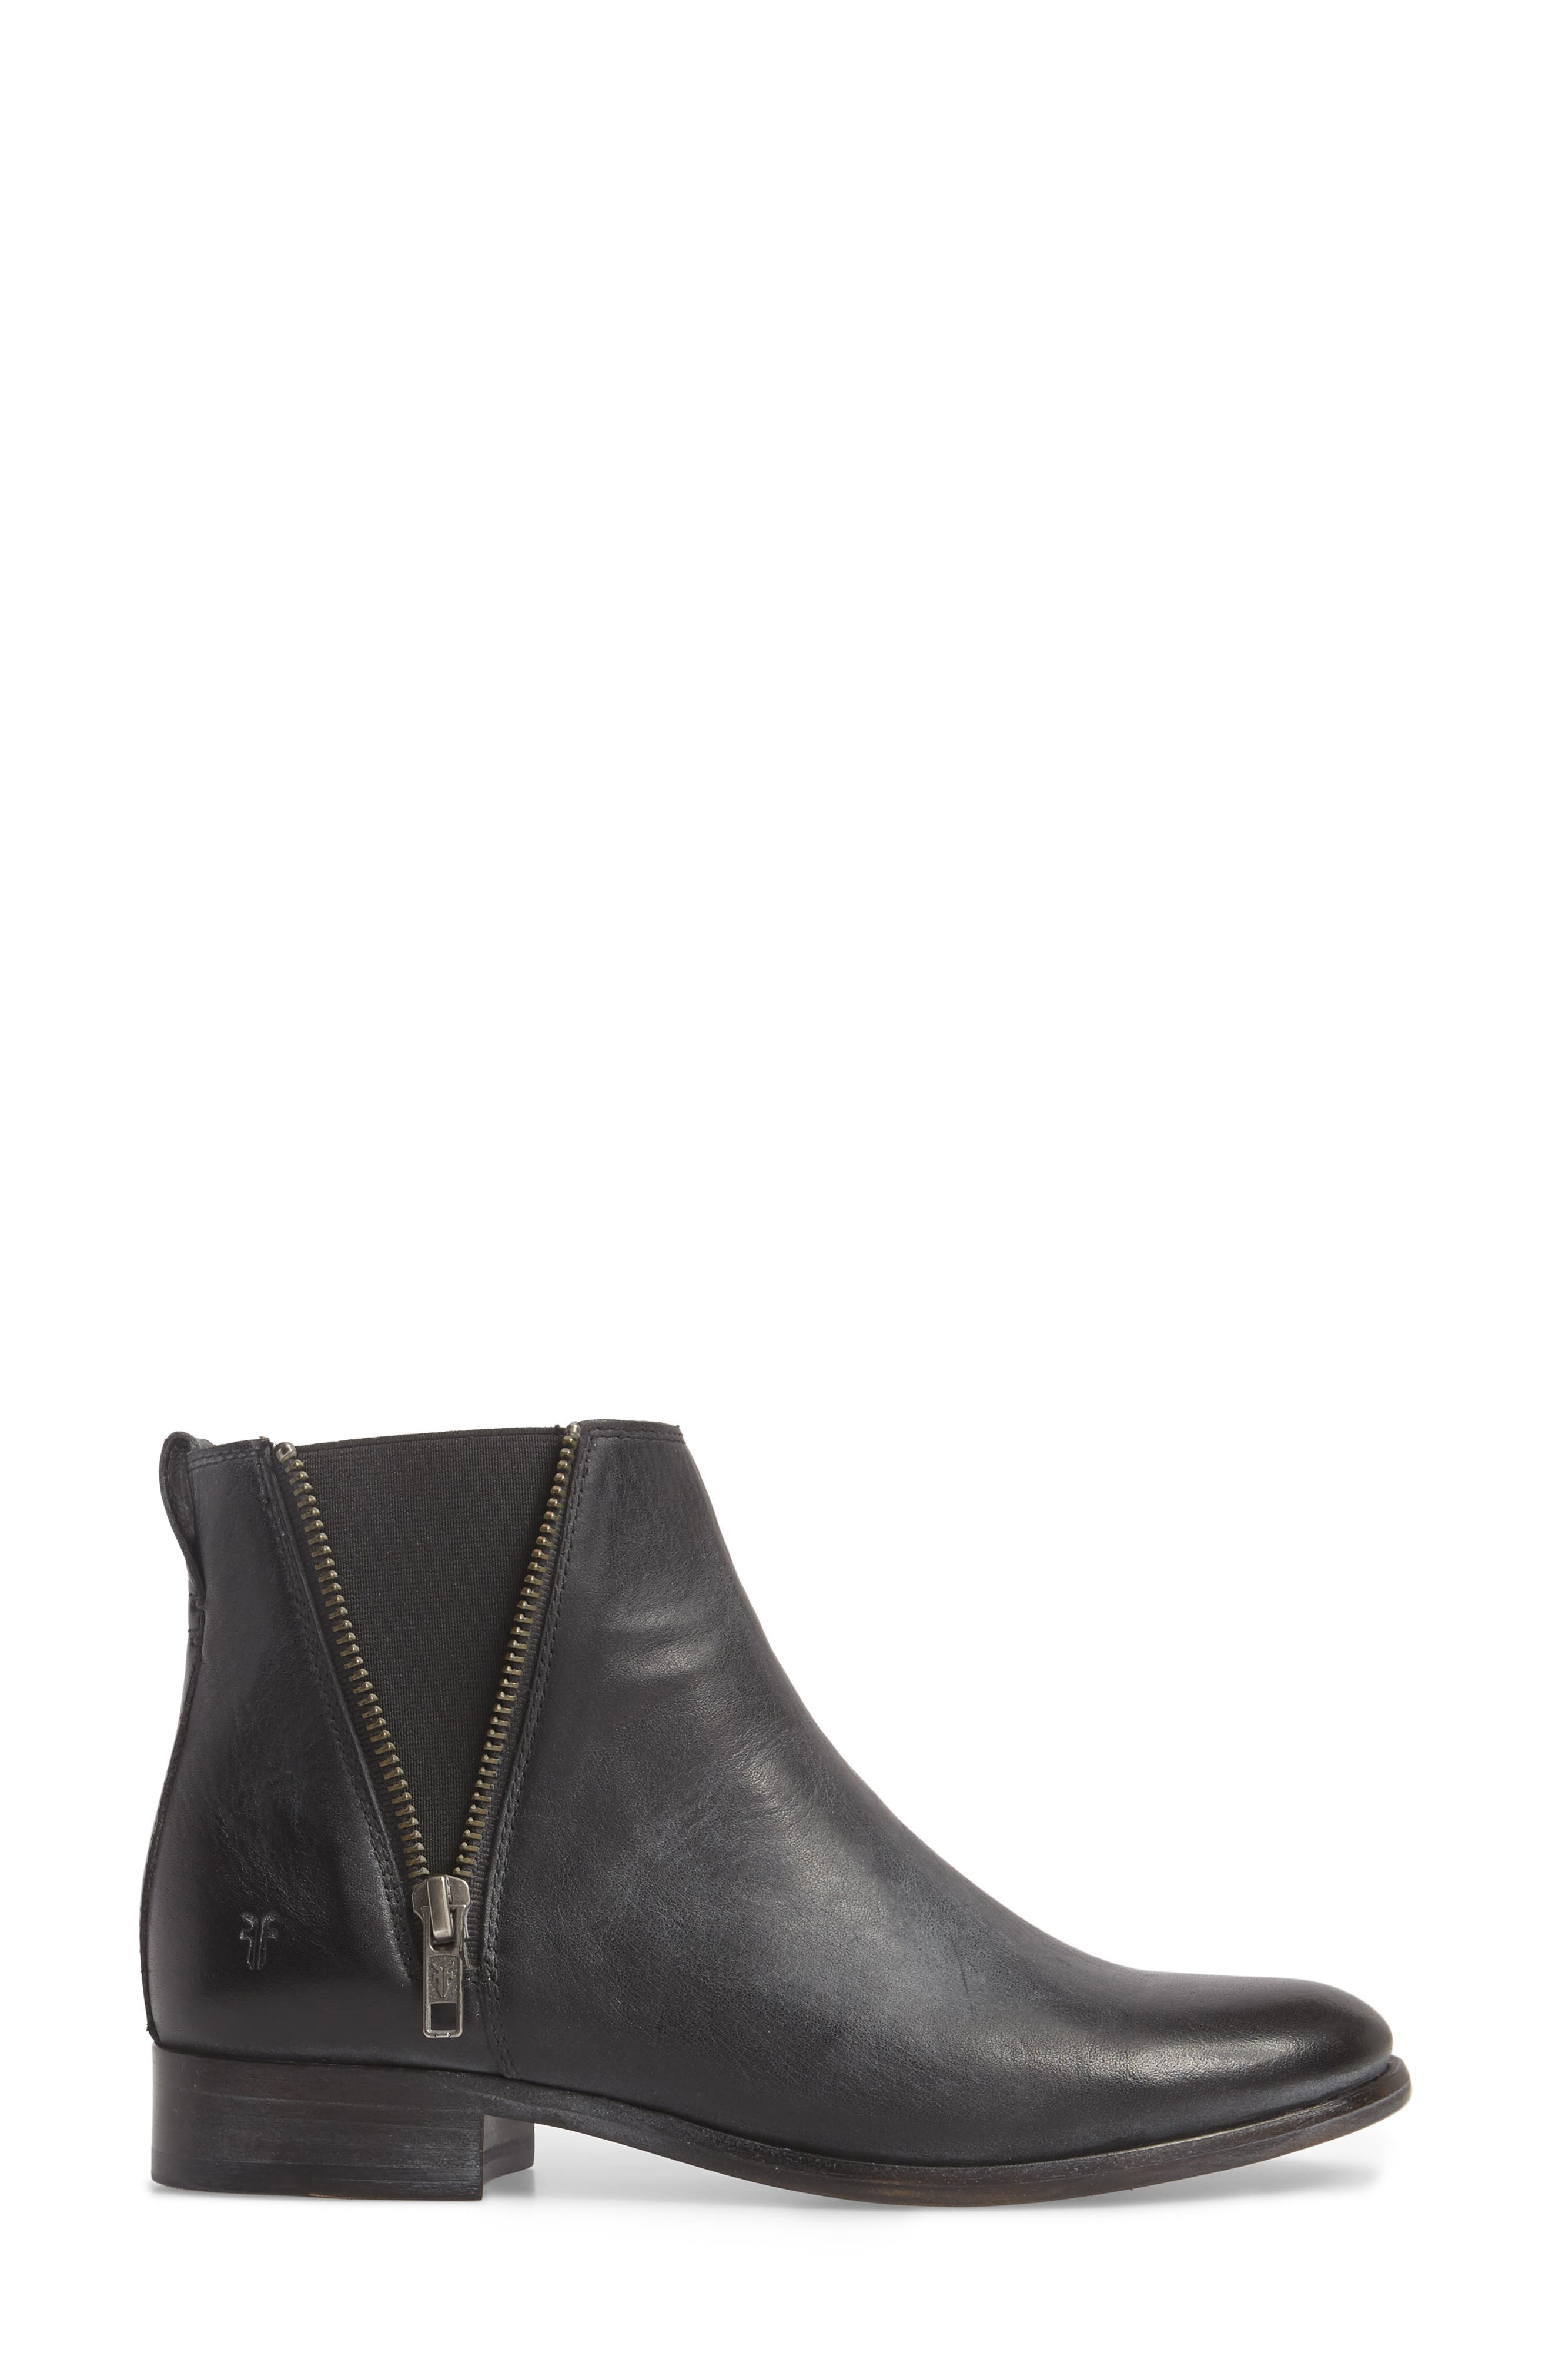 FRYE, Carly Chelsea Boot, Alternate thumbnail 3, color, BLACK ANTIQUED LEATHER